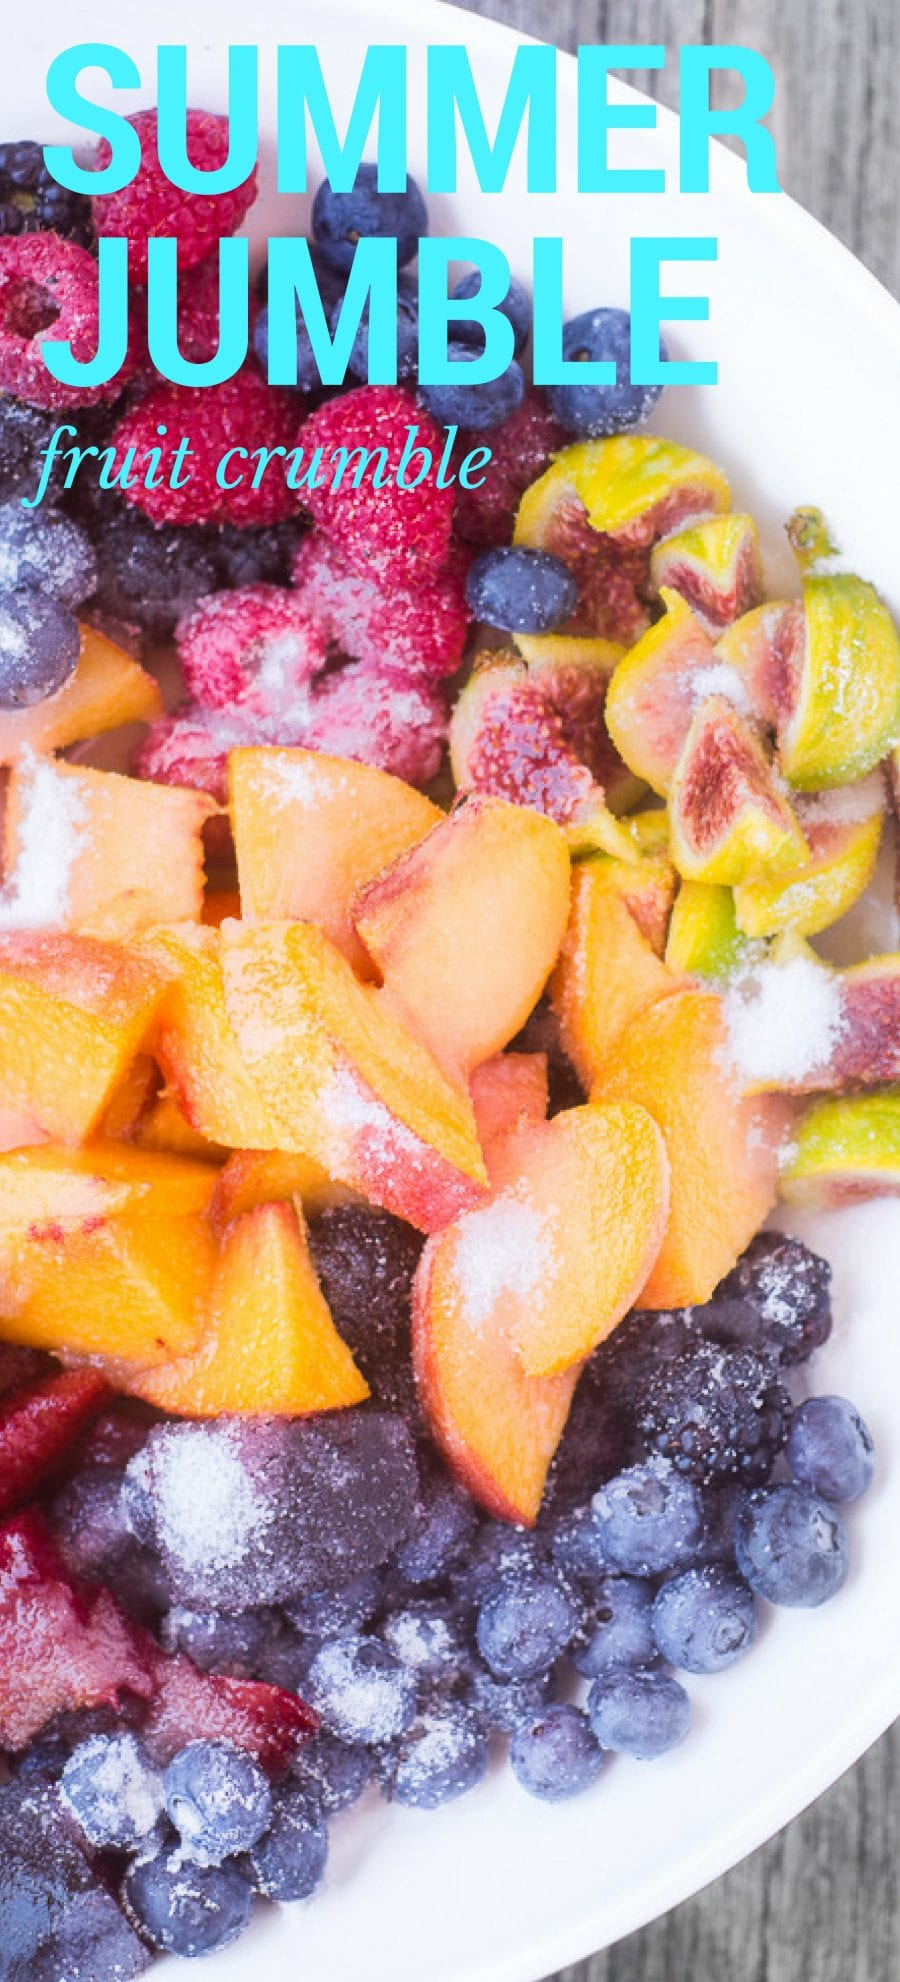 Are you ready to mix it up? Summer Jumble Fruit Crumble combines all those bits and pieces of delicious ripe fruit you've got lying around into one fabulously easy dessert. | stone fruit | berries | baking | easy dessert | summer dessert |